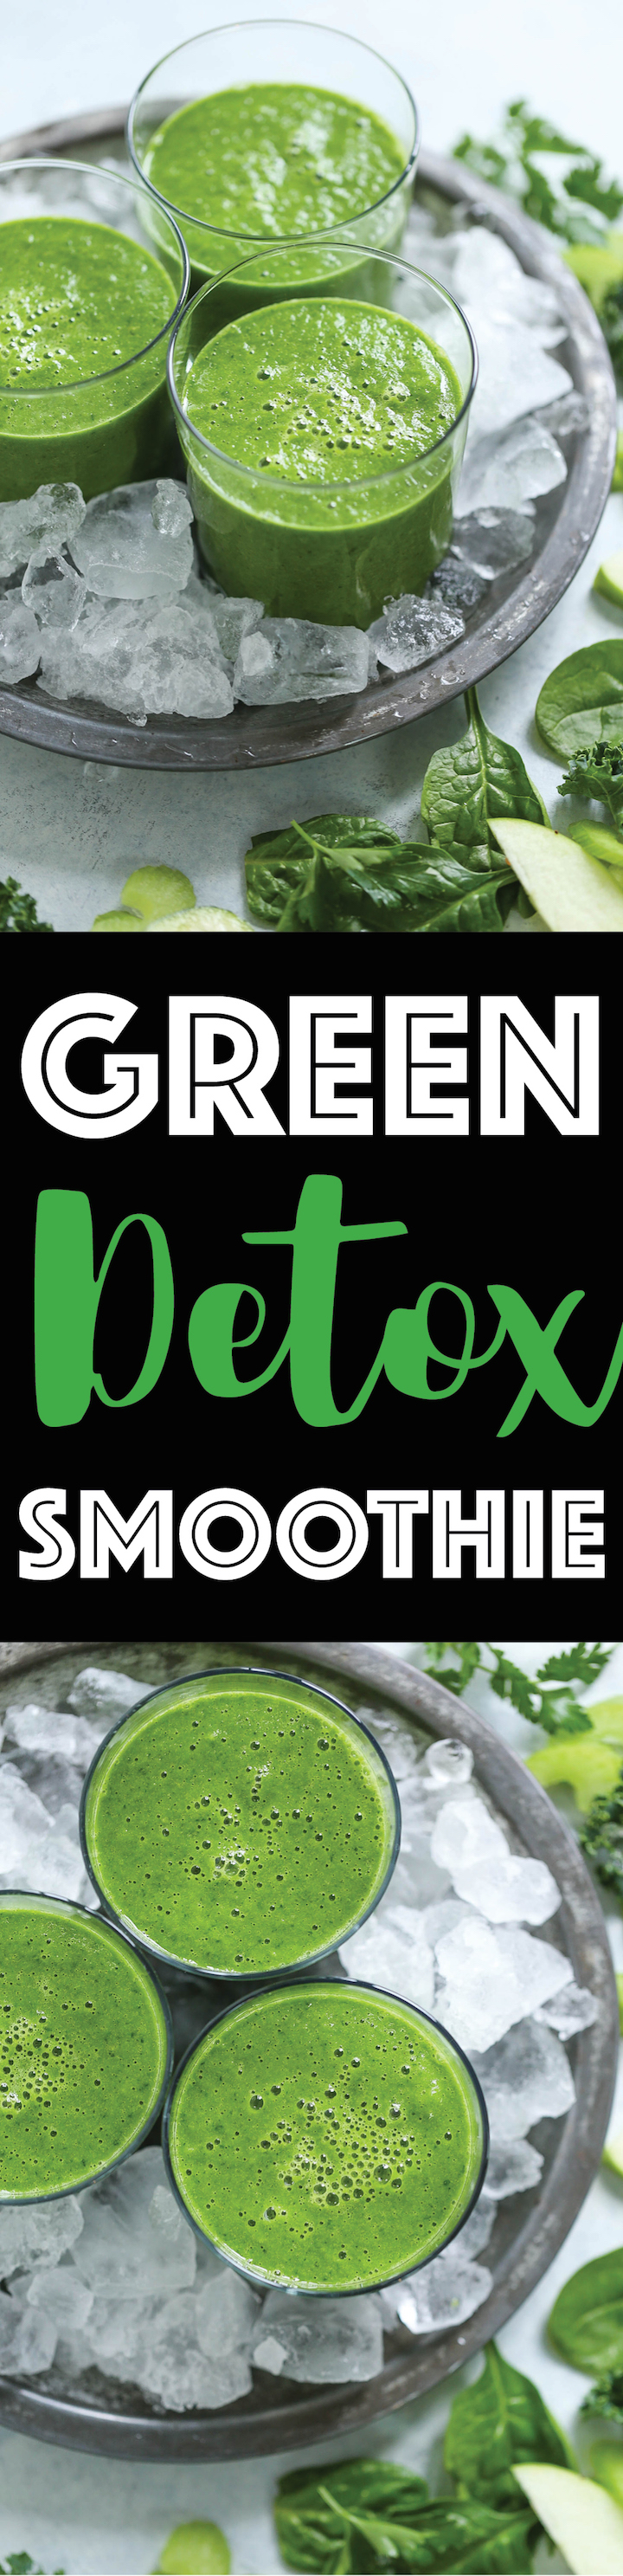 Green Detox Smoothie - Feel your best with this healthy, nutrient-rich, bikini-ready green smoothie! Loaded with powerful superfoods like spinach and kale, celery, apple, banana and ginger! Just 136 calories per serving.